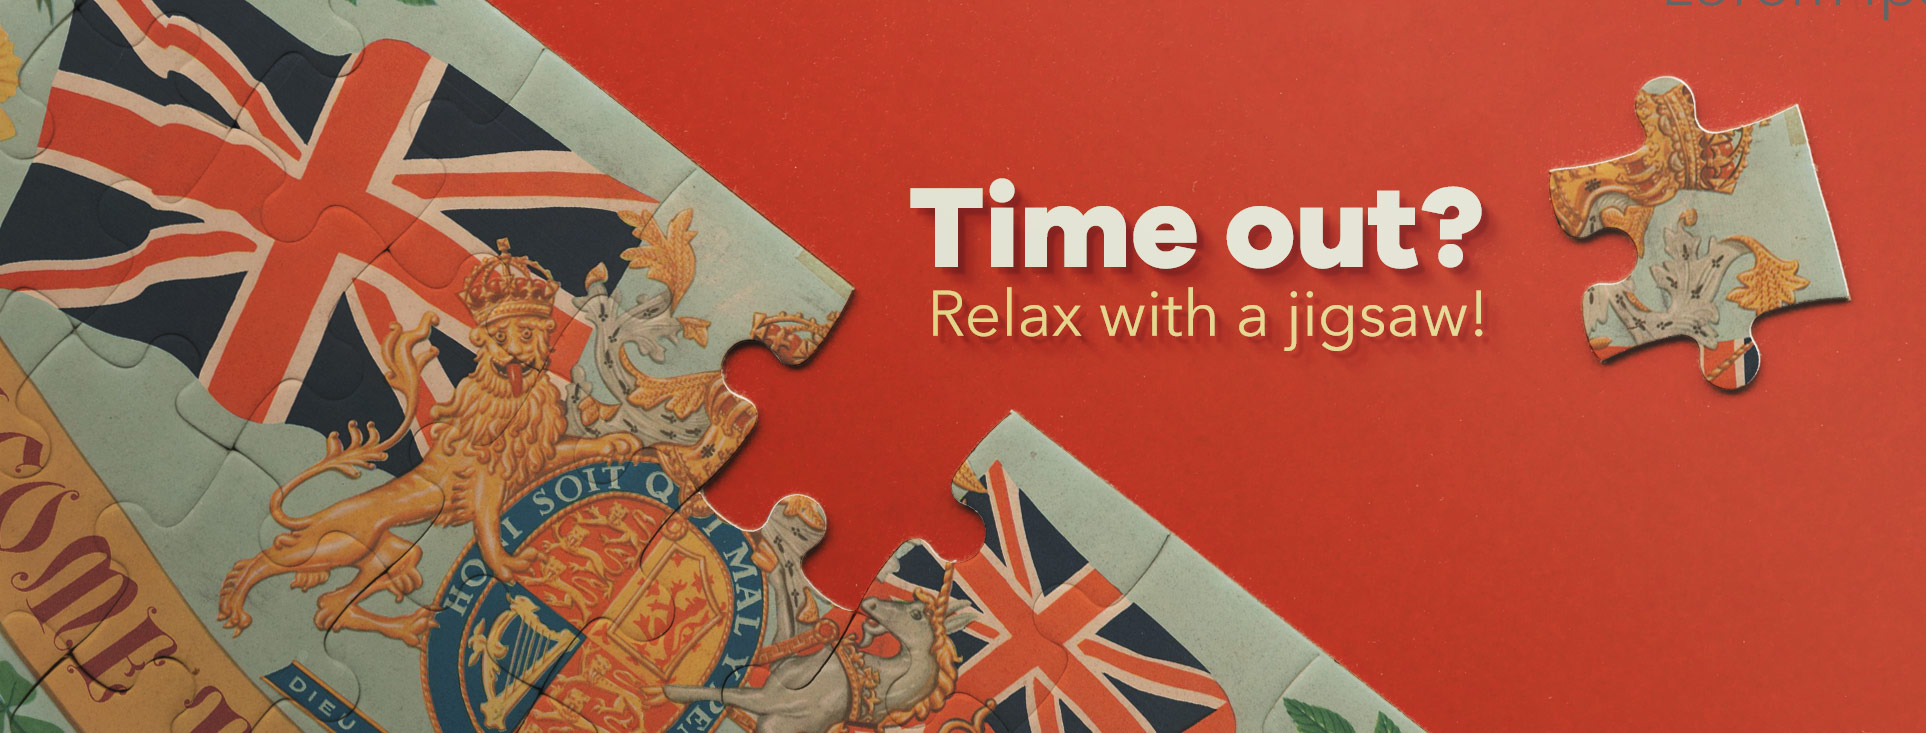 Time out? Relax with a jigsaw